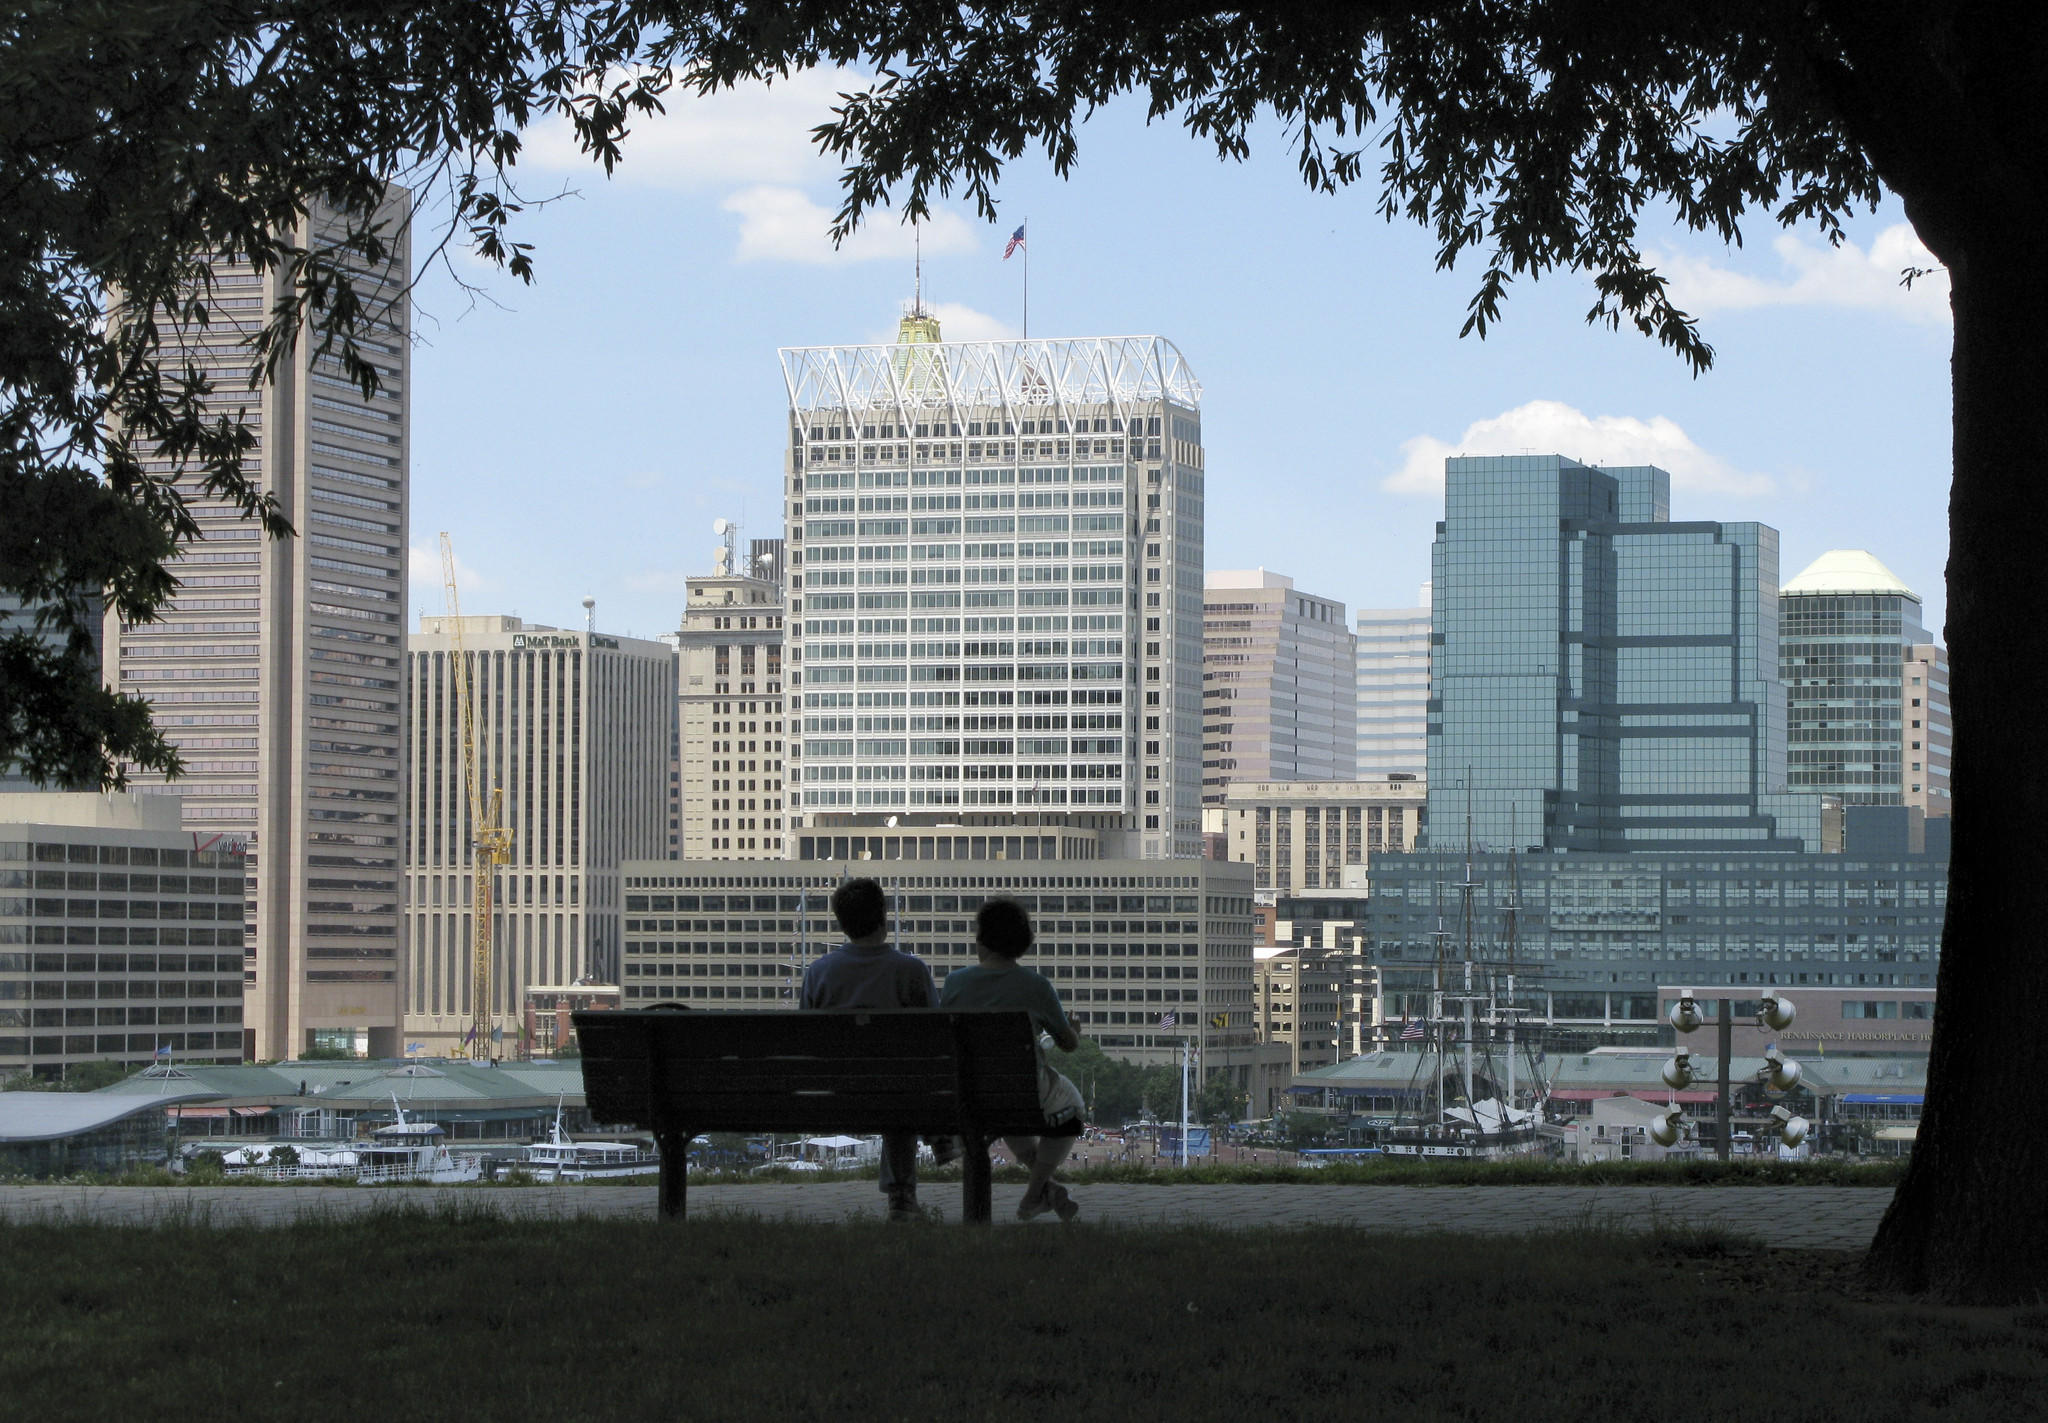 A couple enjoy the view of the Baltimore skyline from the park on Federal Hill.